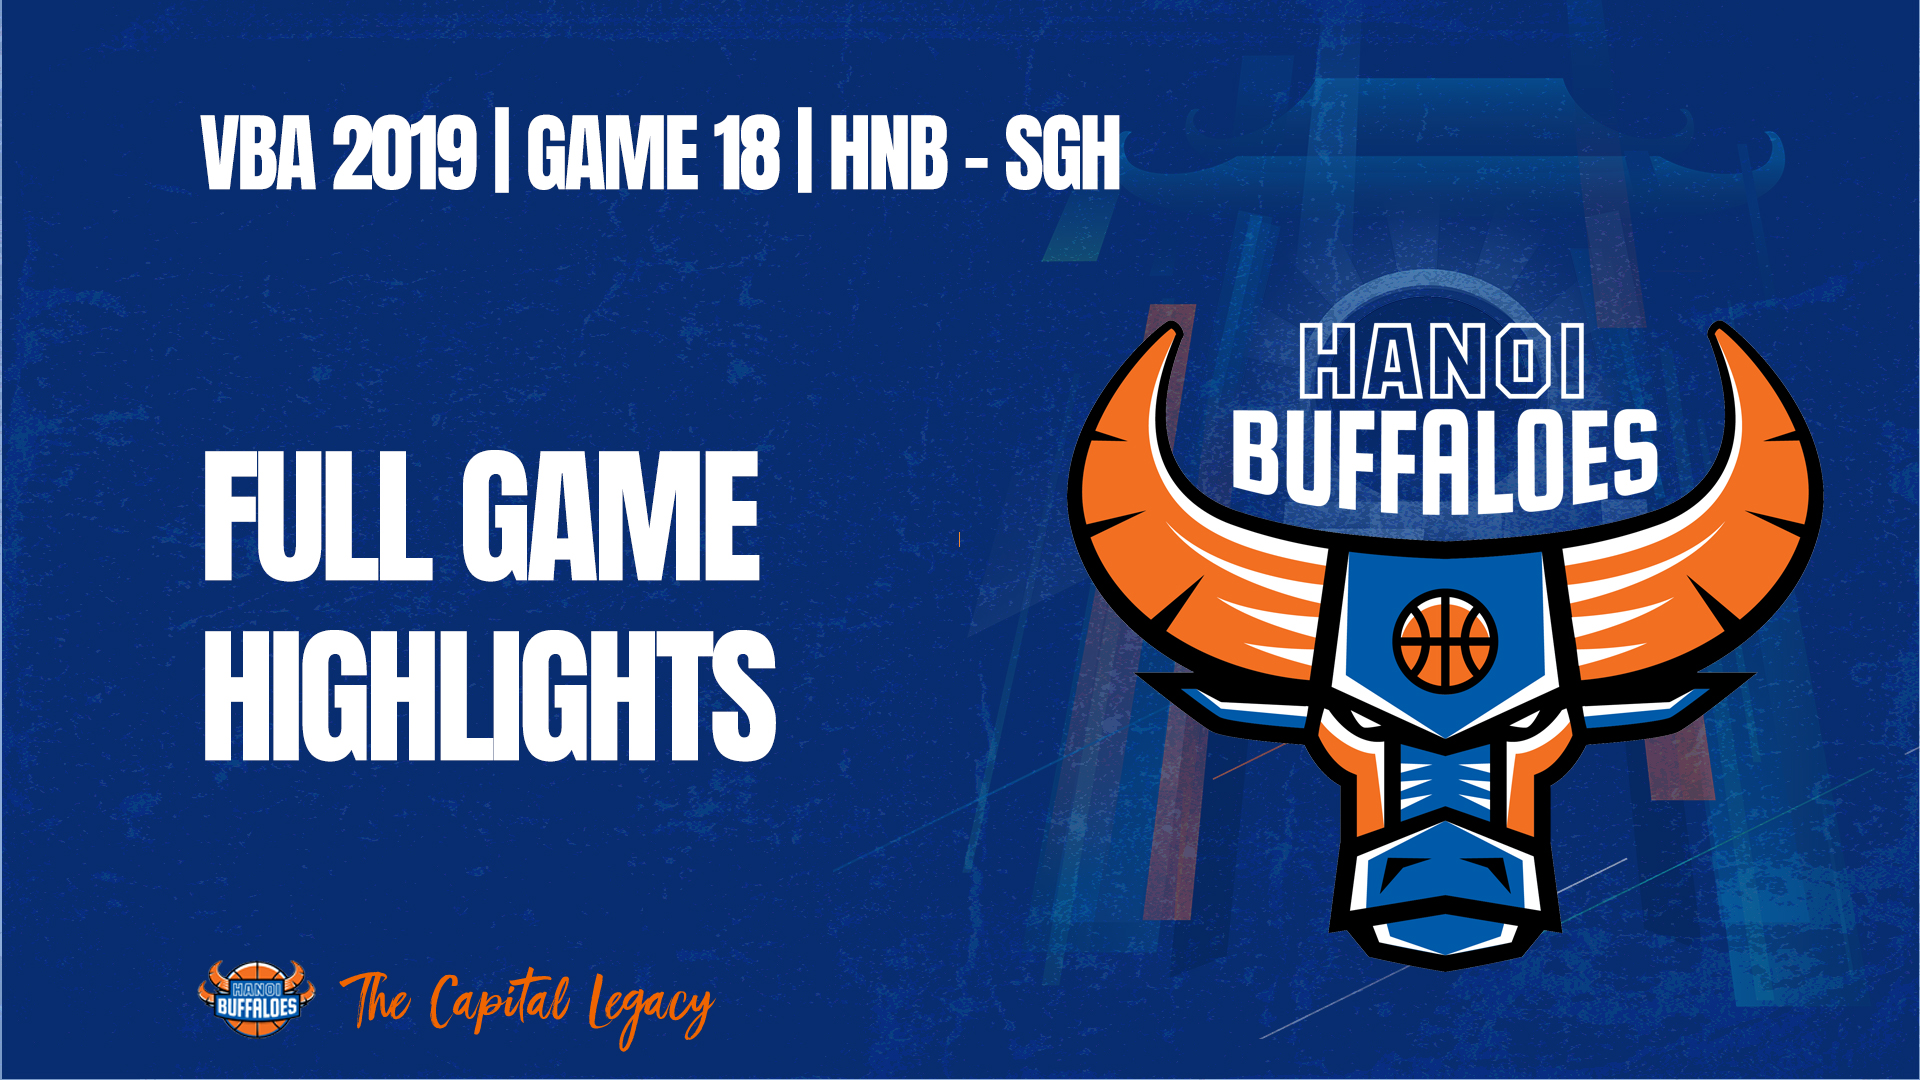 VBA 2019 | GAME 18 | FULL GAME HIGHLIGHTS